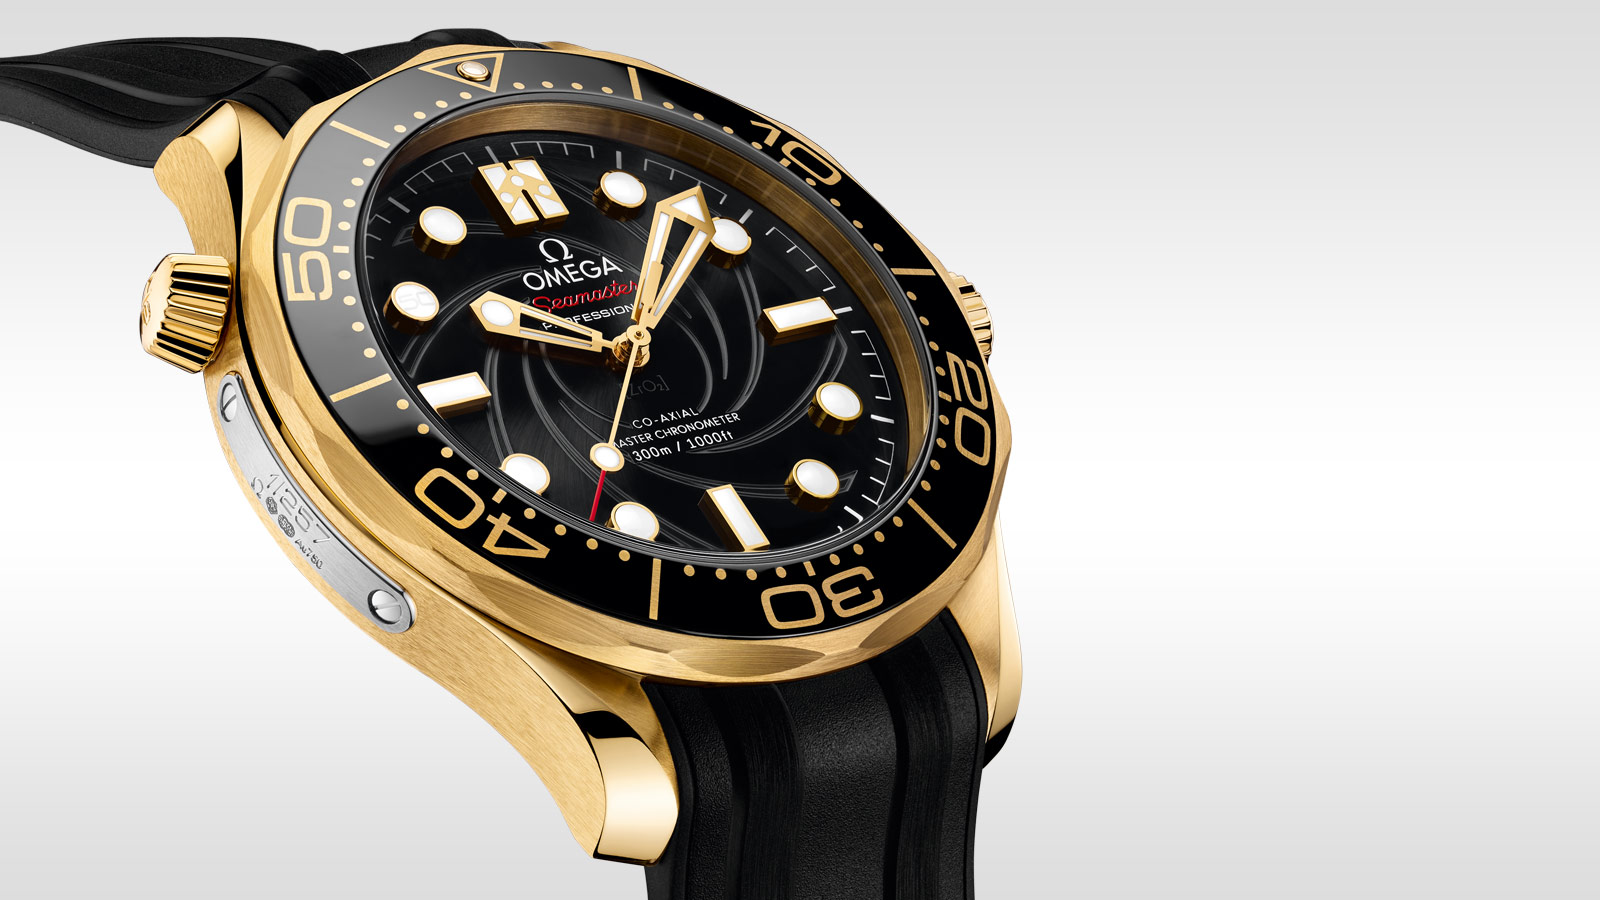 Seamaster Diver 300 M Diver 300M Omega Co‑Axial Master Chronometer 42 mm - 210.62.42.20.01.001 - Ver 1